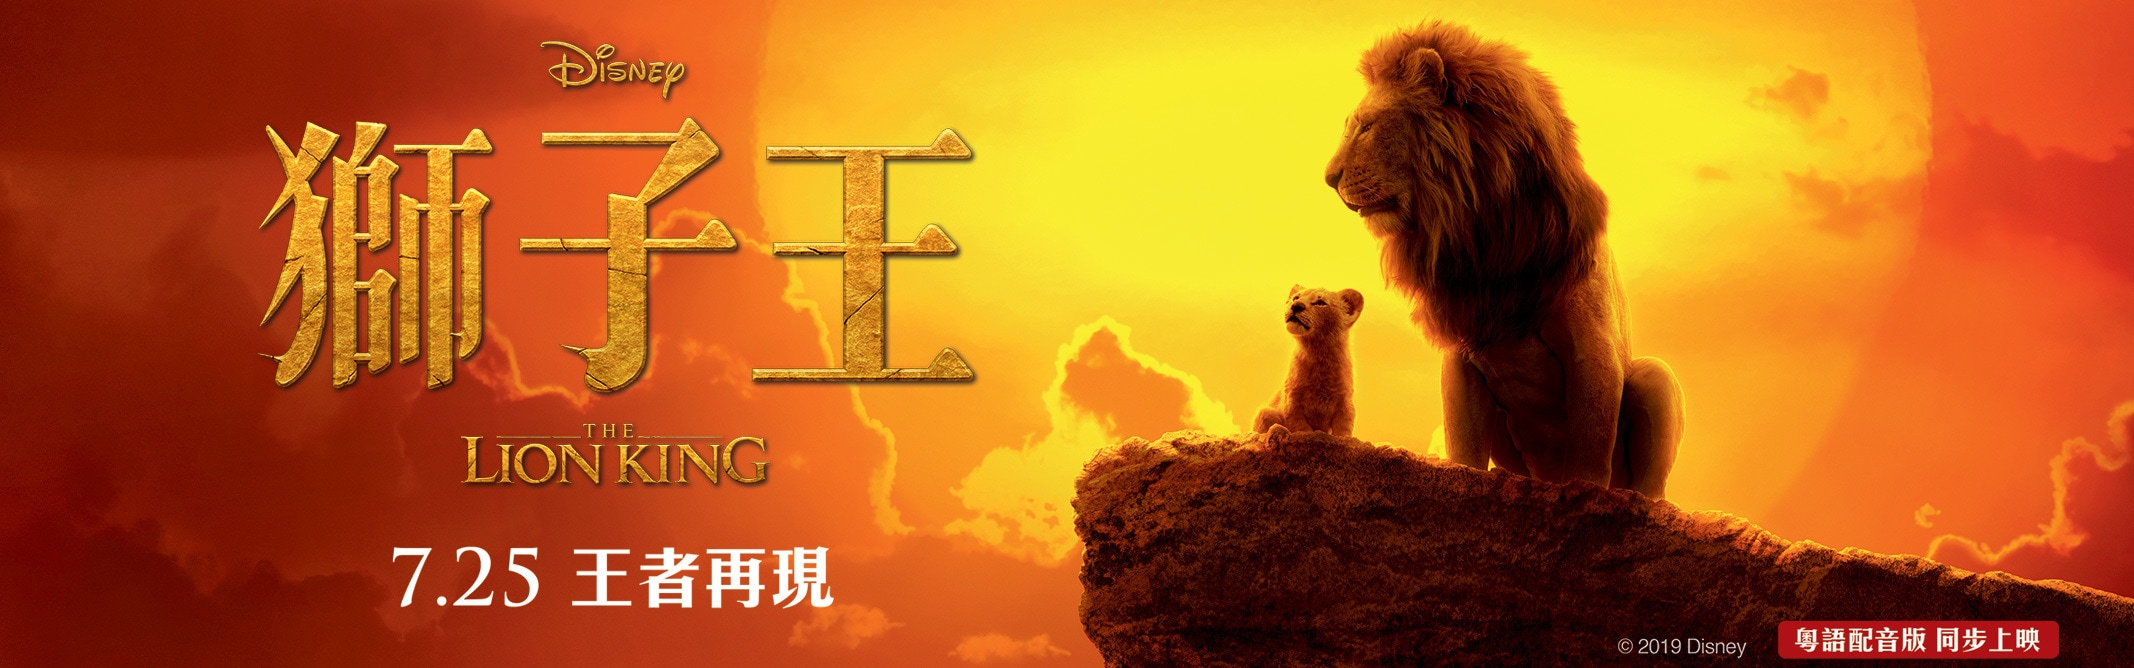 The Lion King - Disney HK